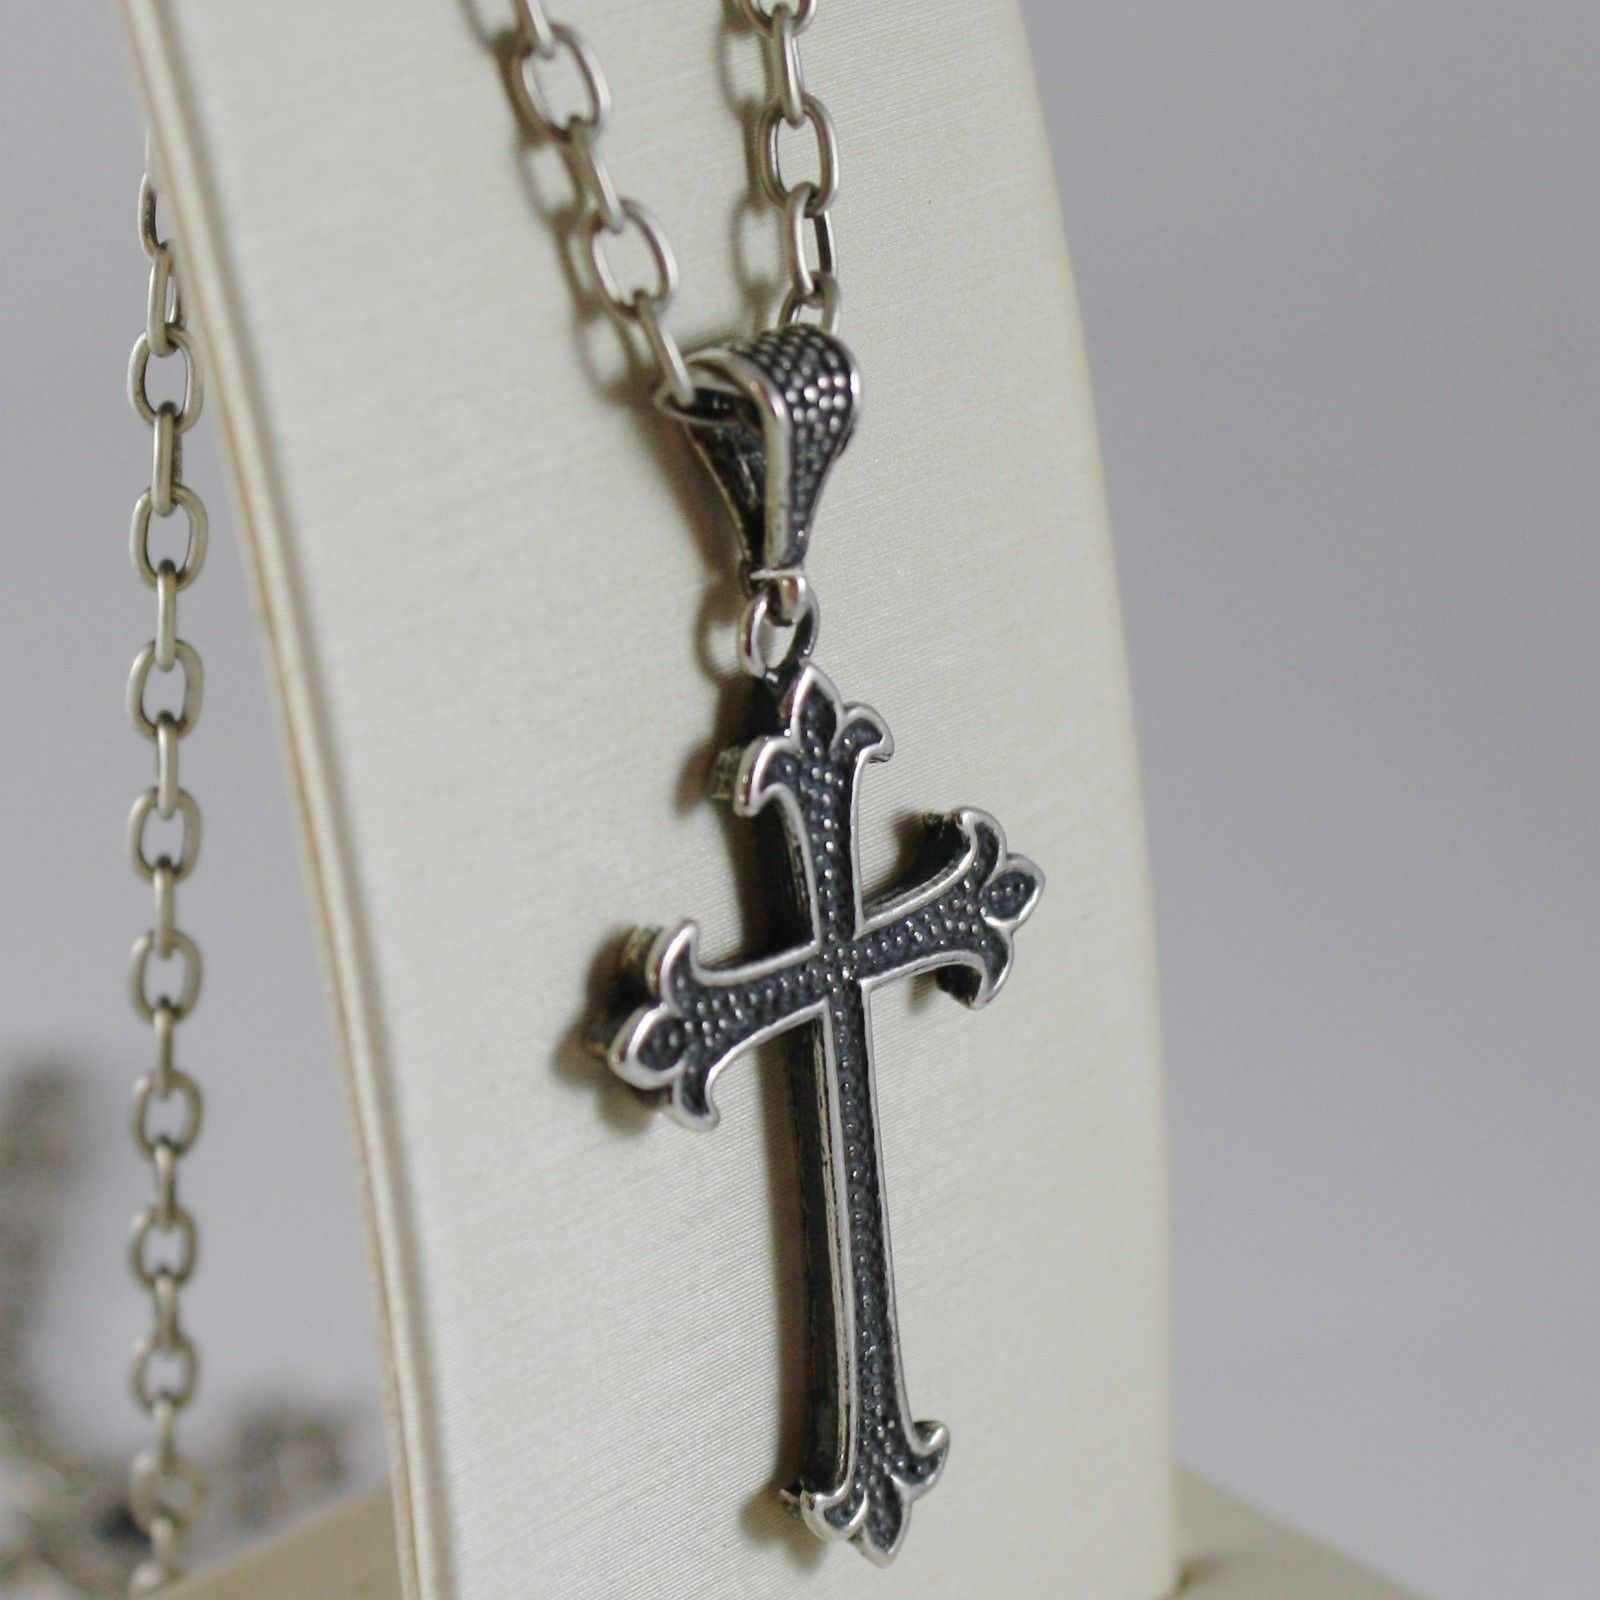 925 BURNISHED SILVER NECKLACE LILY CROSS PENDANT WITH OVAL CHAIN MADE IN ITALY